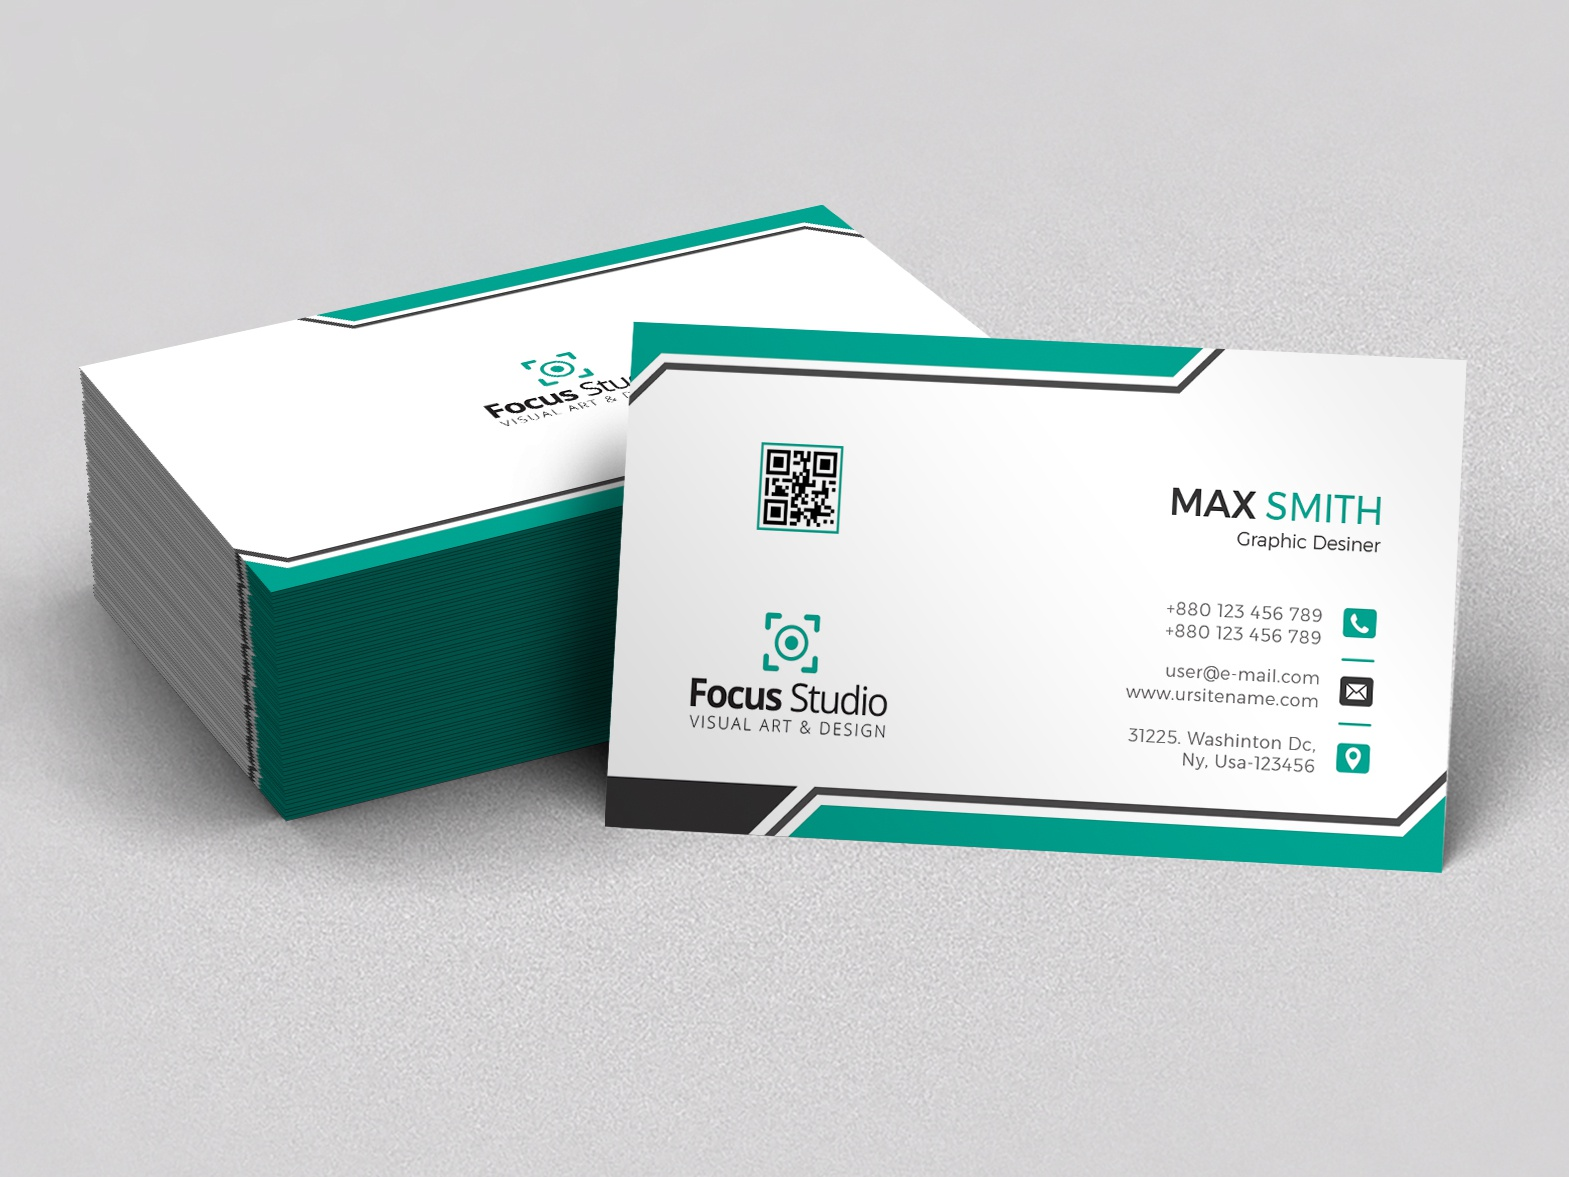 Business Card concept clean design biz card business card print design business branding design clean design professional crative professional design graphic design branding awesome corporate